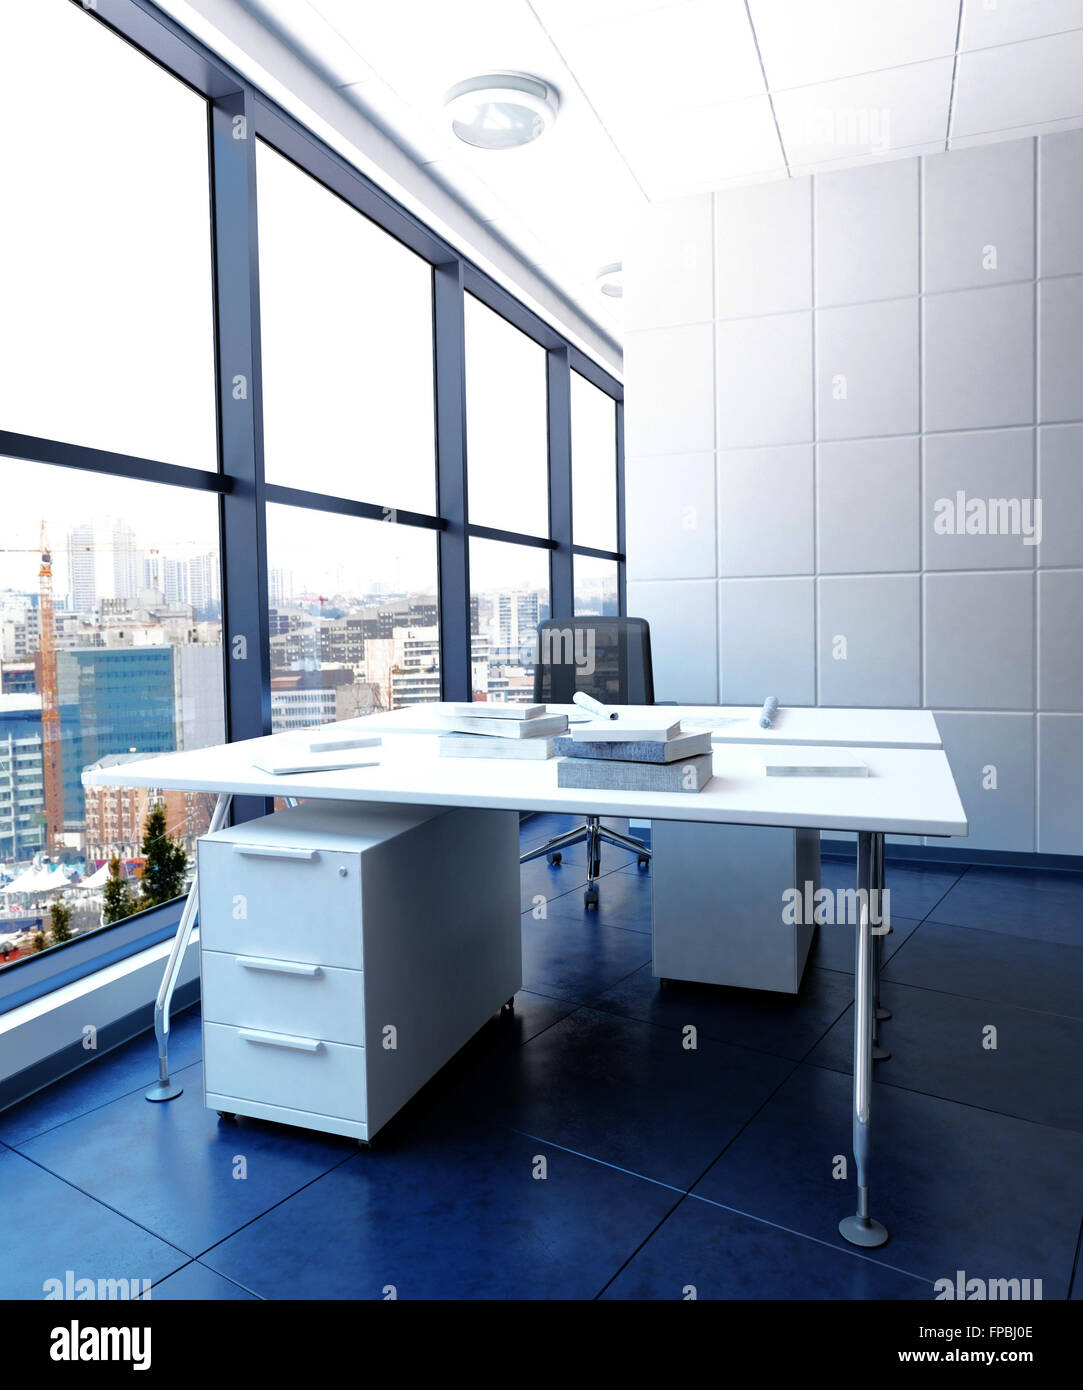 decorated office. Modern Work Station In Urban Office Building - White Desk And Drawers Sparsely Decorated High Rise Business With View Of City